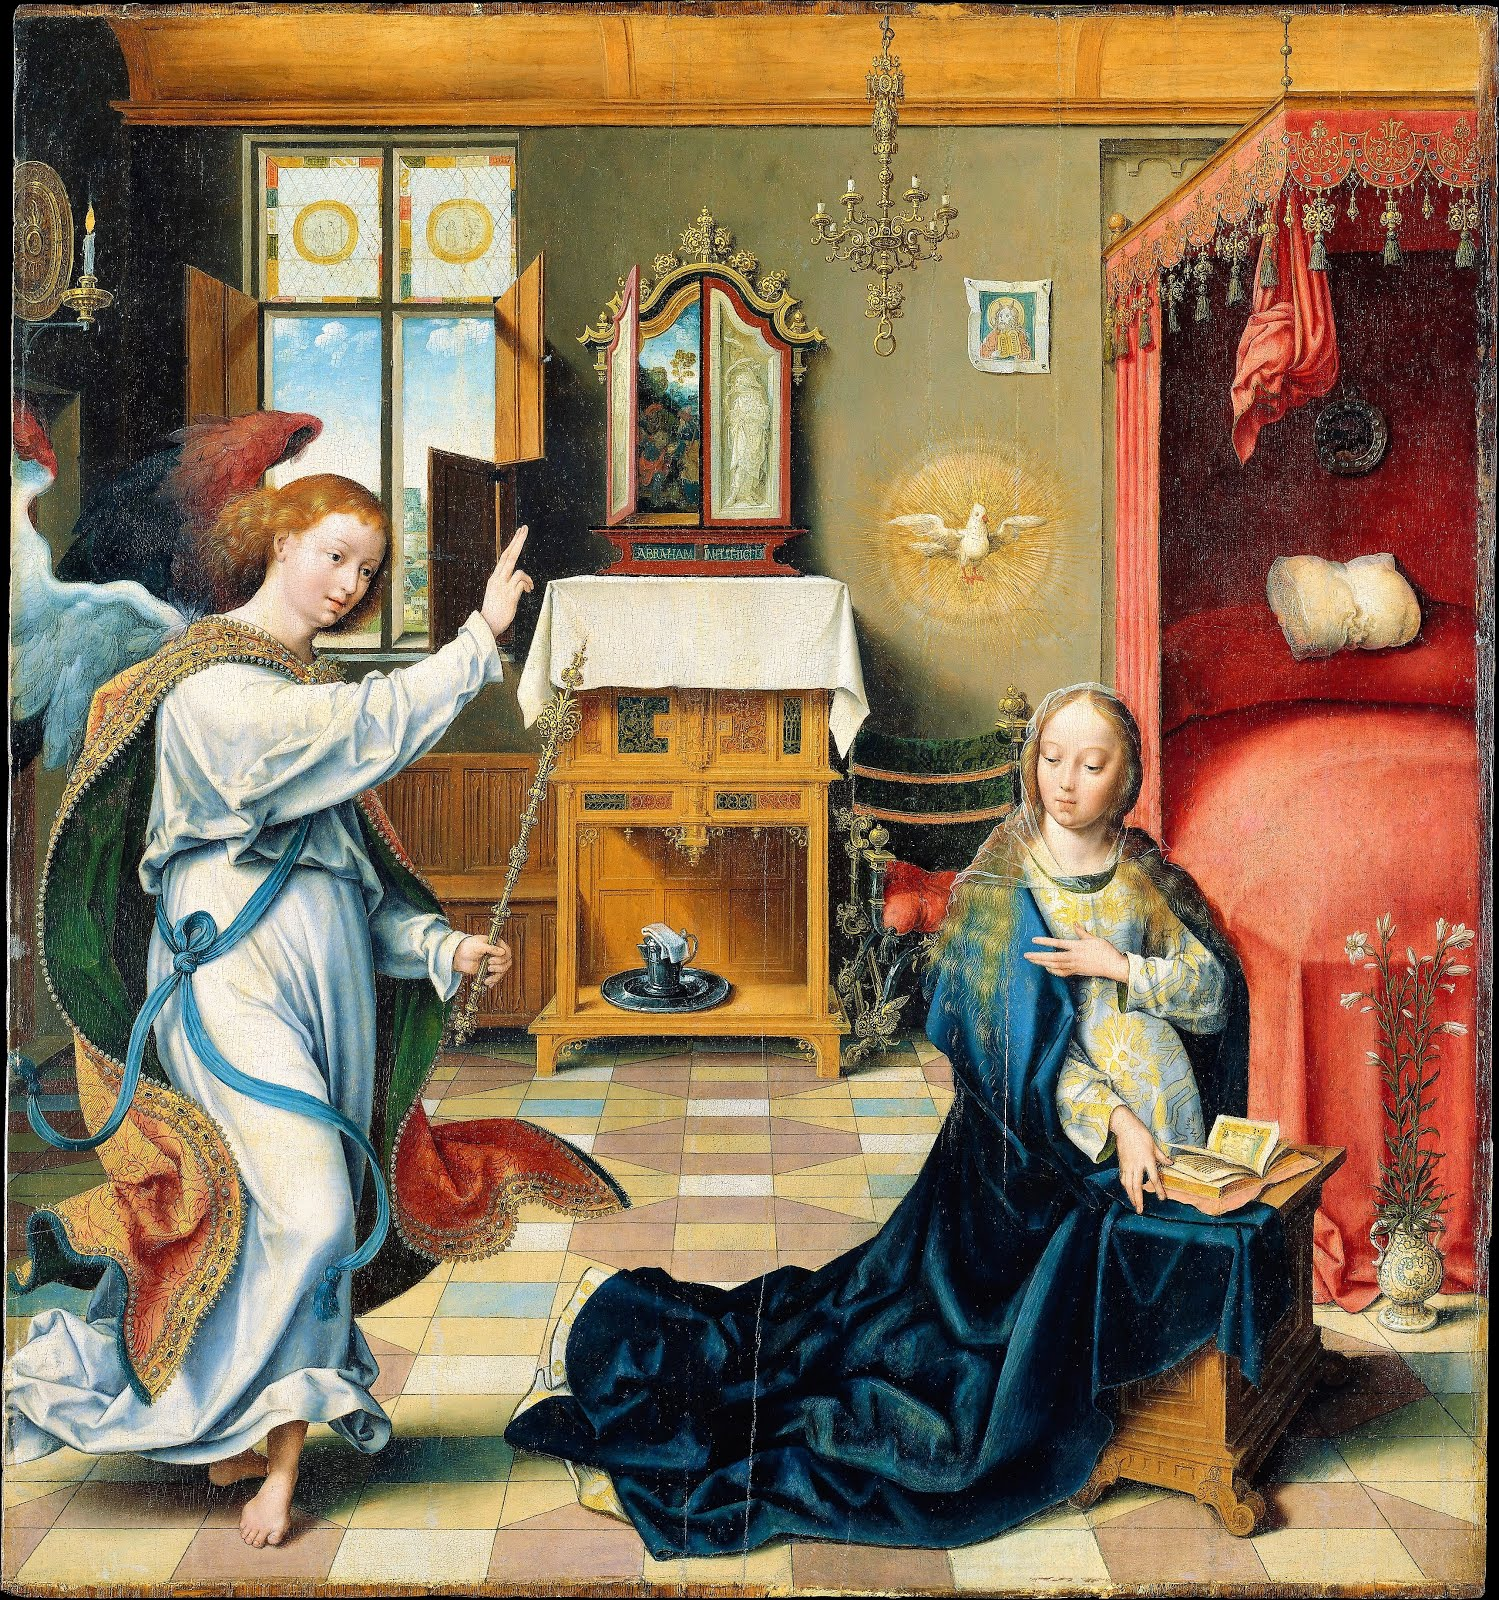 The Annunciation, Part VIII, In the Bedroom